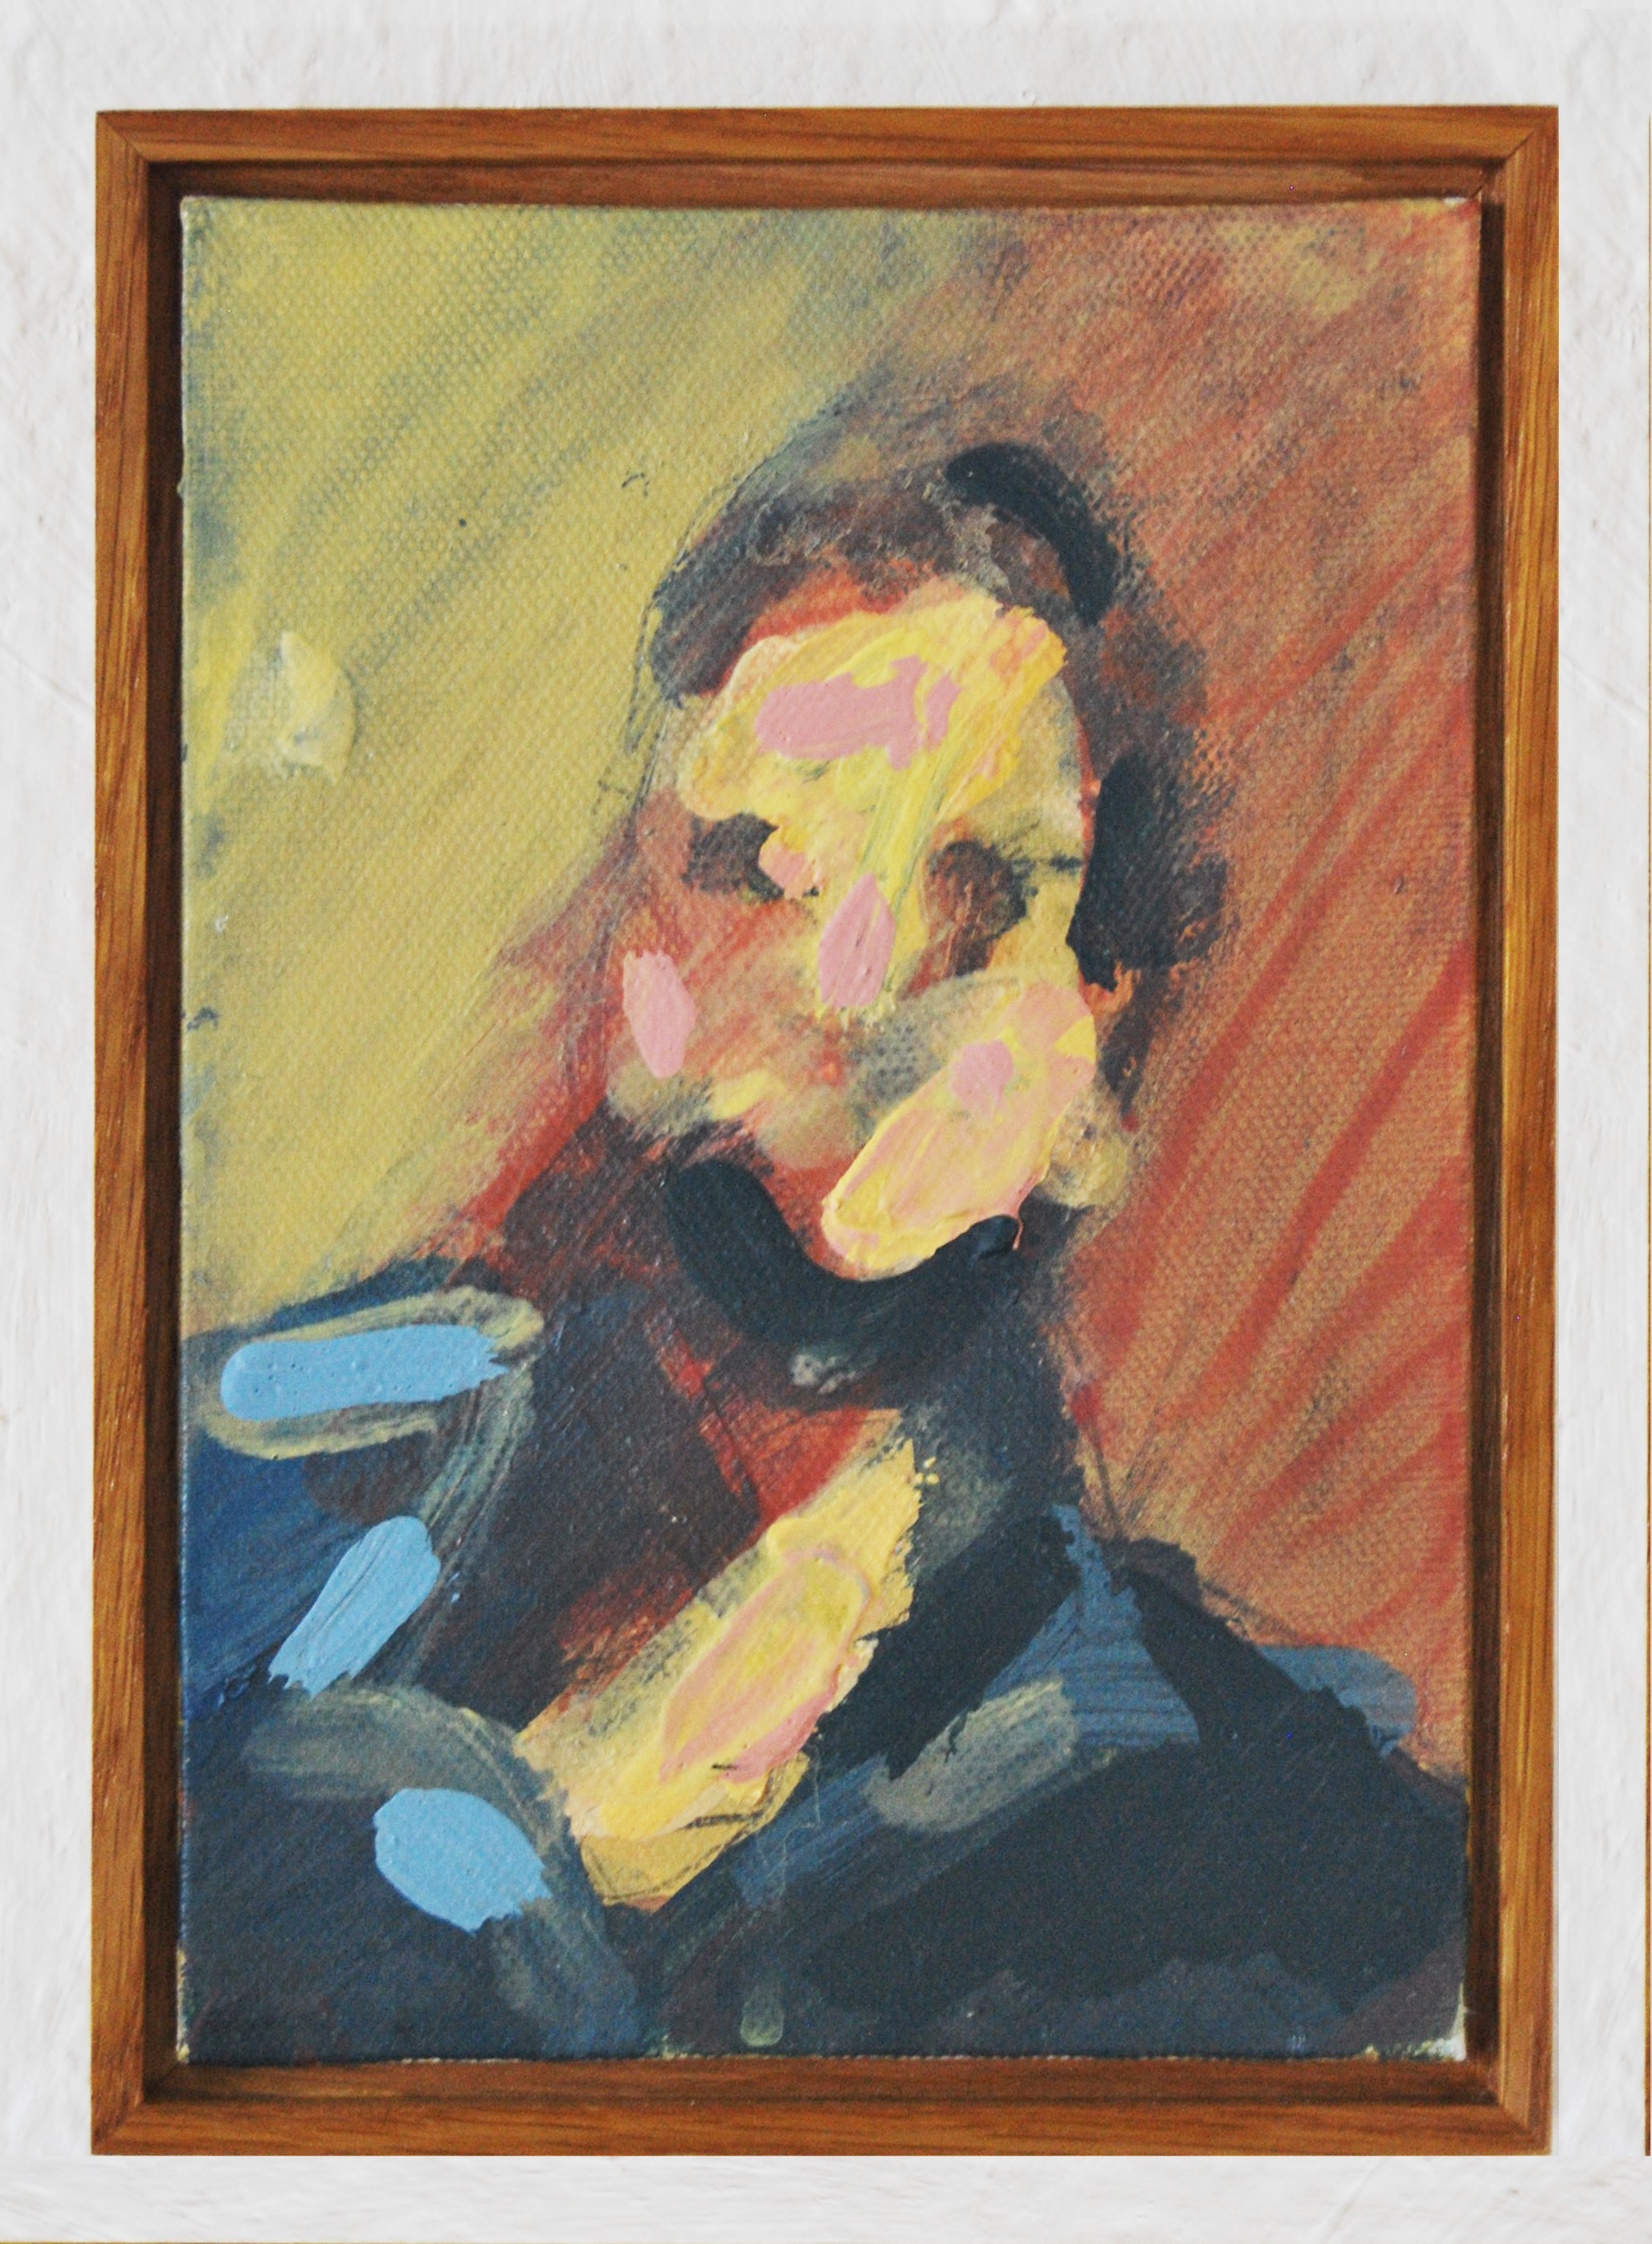 Study for Portrait of a Man by a Rob